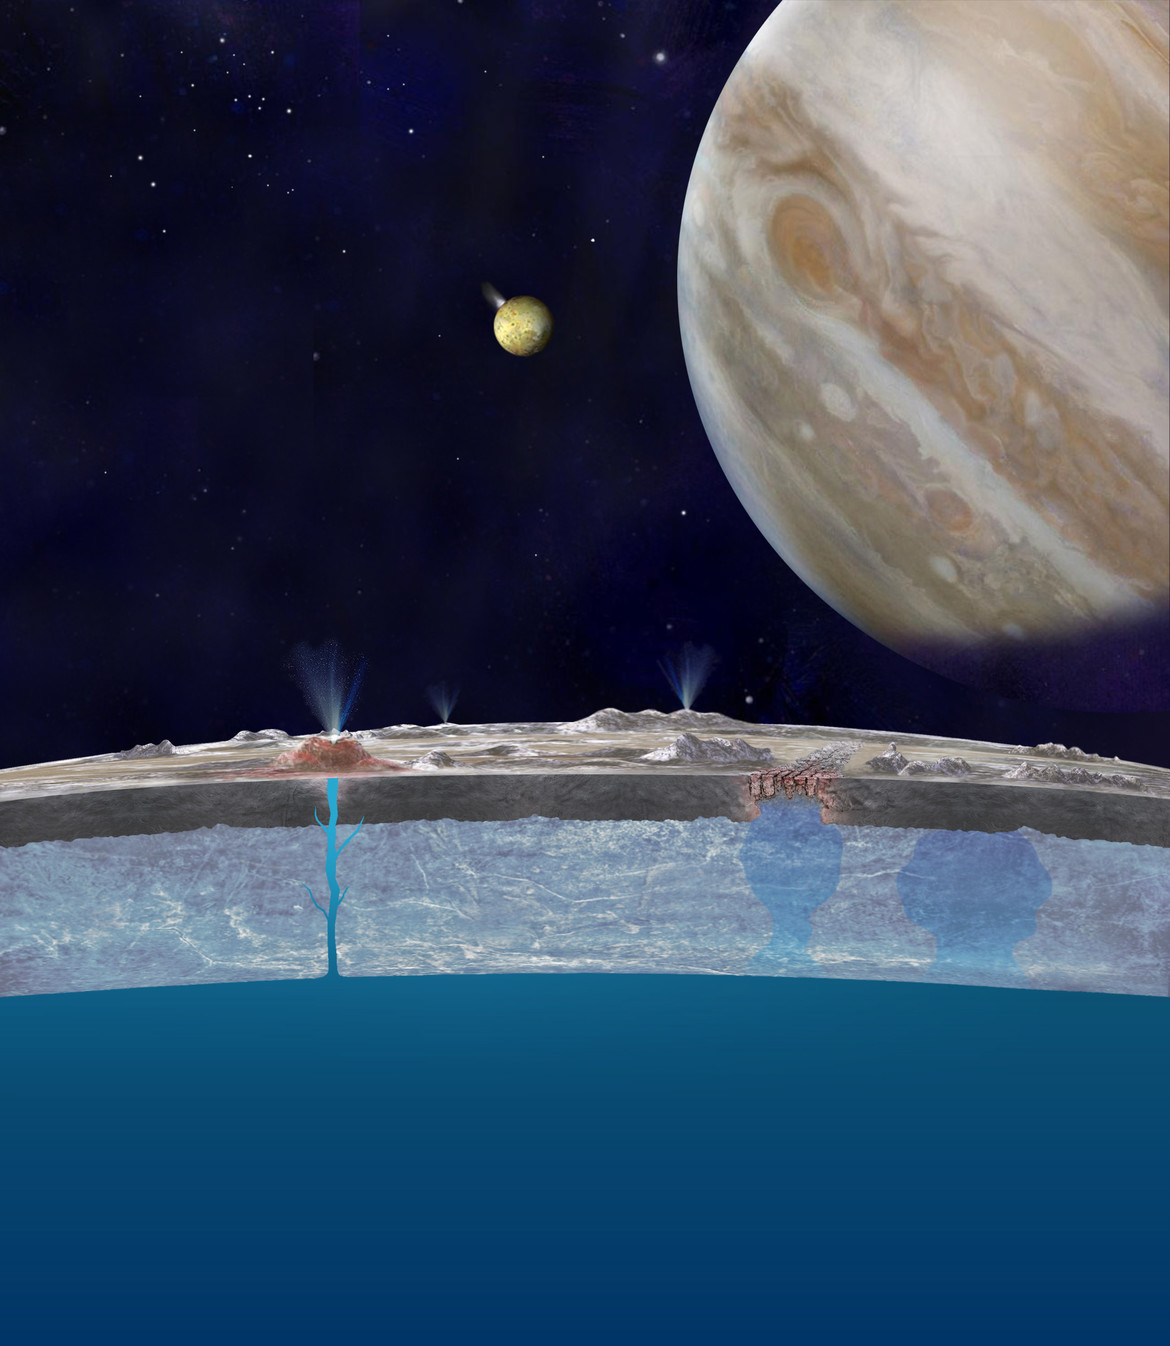 Europa has an undersurface ocean that may be feeding geysers on the surface. Credit: NASA/JPL-Caltech